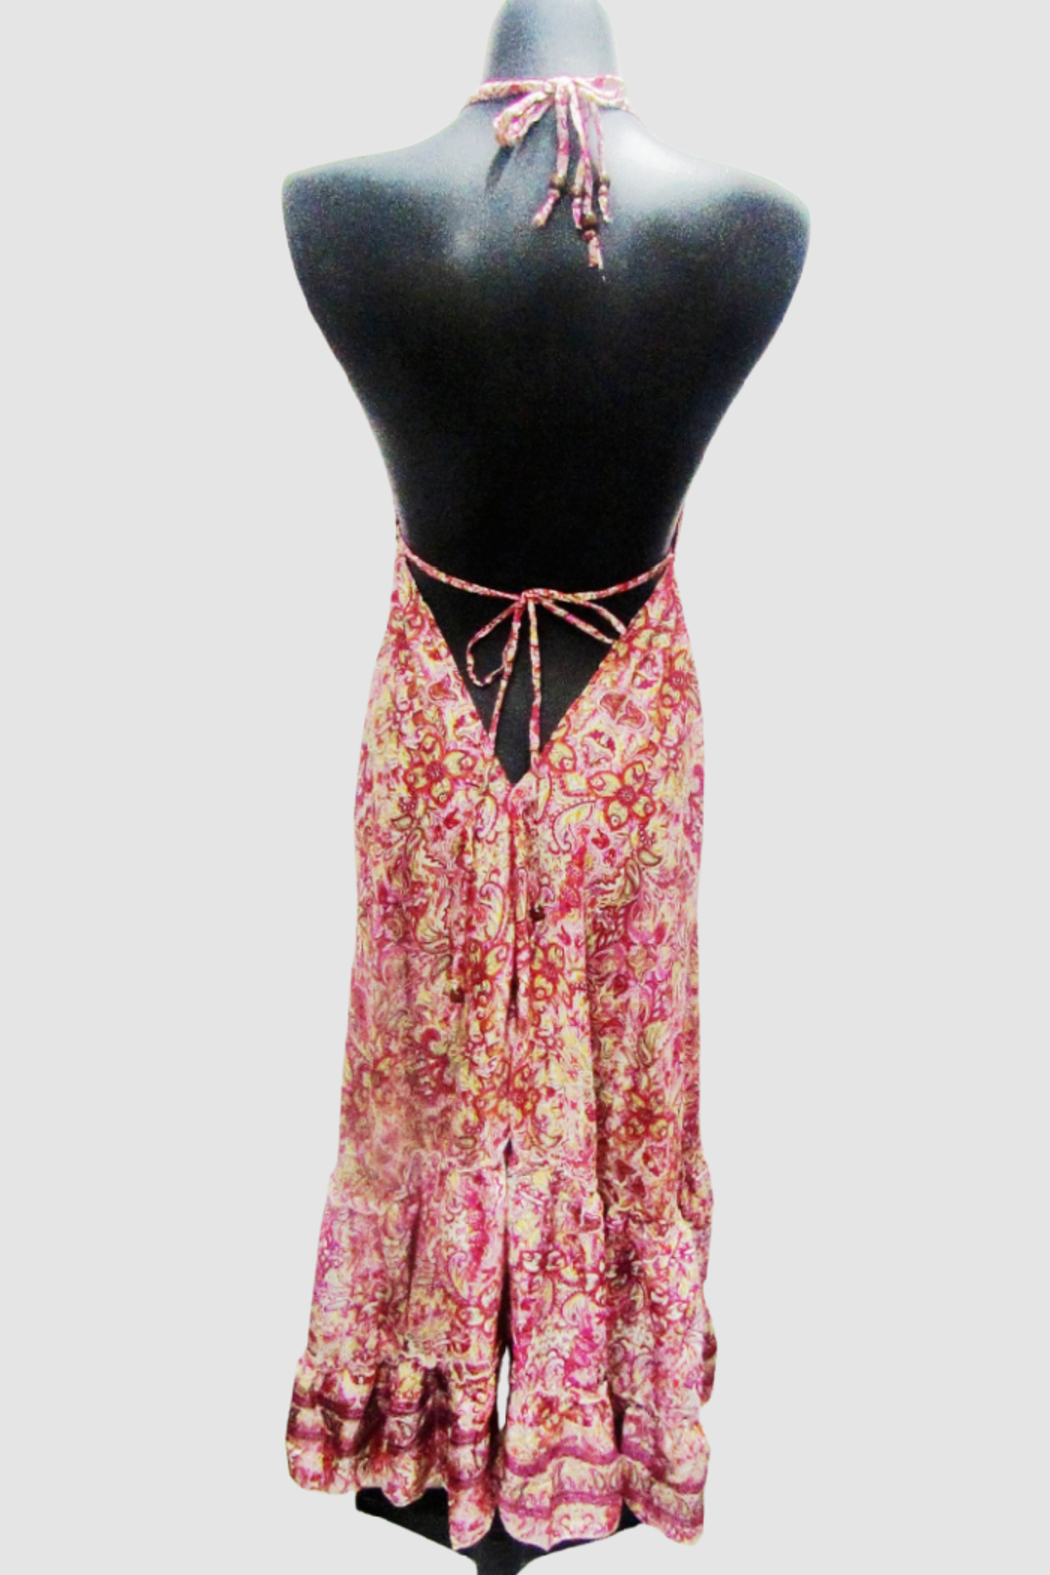 India Boutique Bohemian Rhapsody Halter Dress - Pink/Red Paisley - Front Full Image